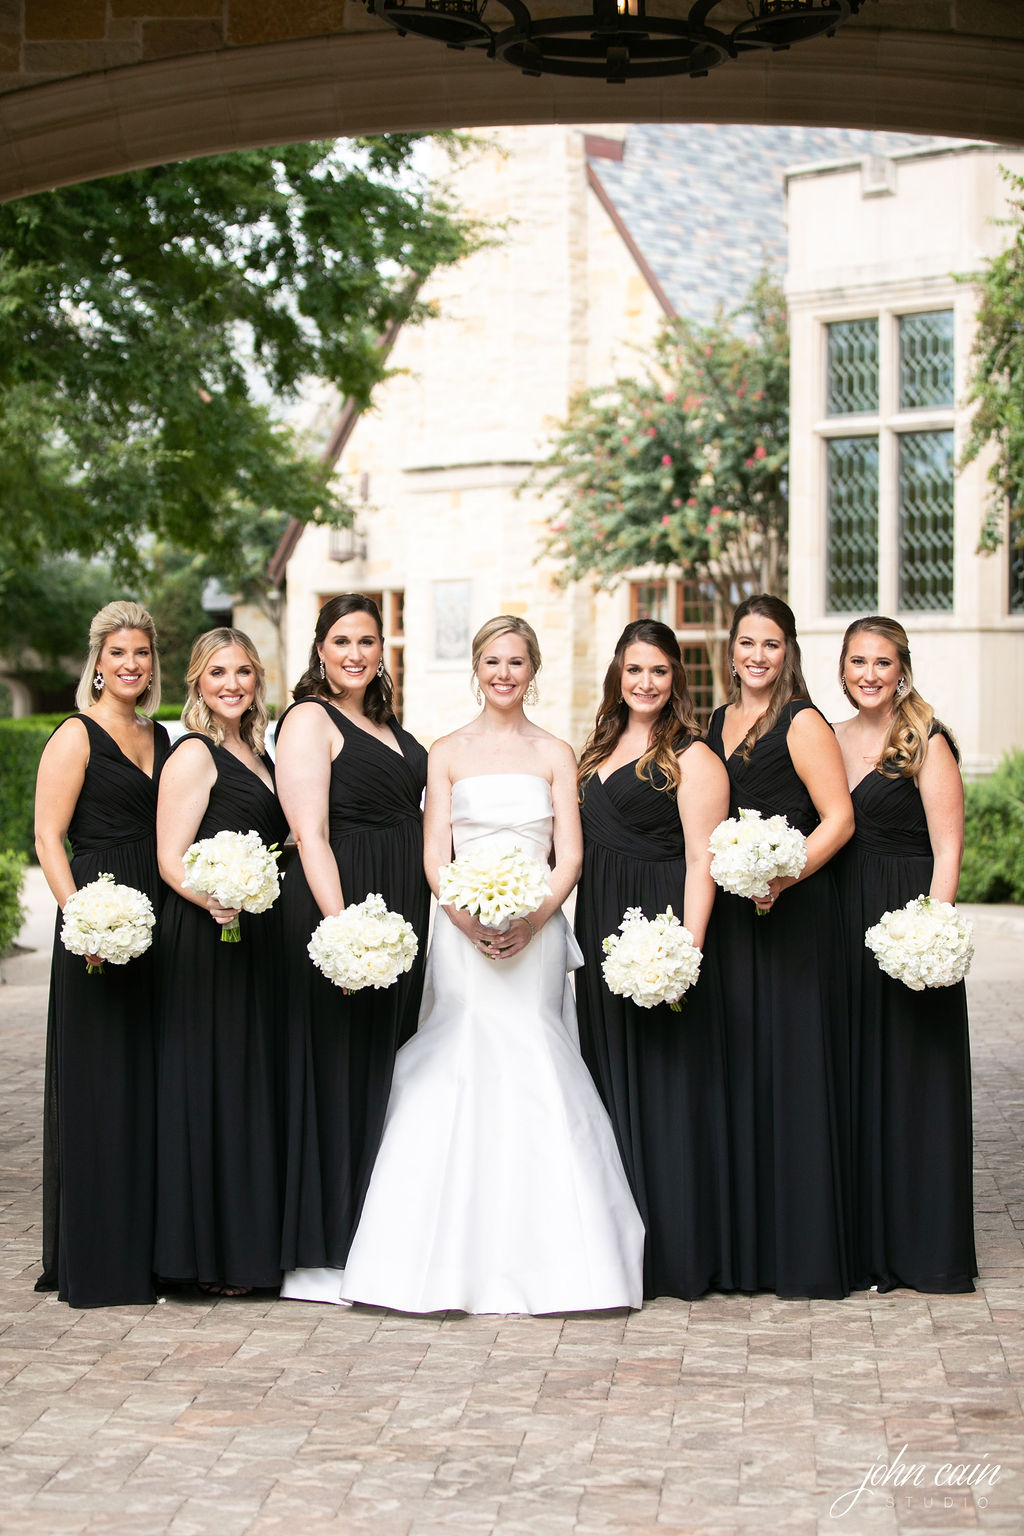 Dallas Country Club Wedding - Timeless Dallas Wedding - Wedding Planner in Dallas - Allday Events - PreCeremony Portraits - 18.JPG